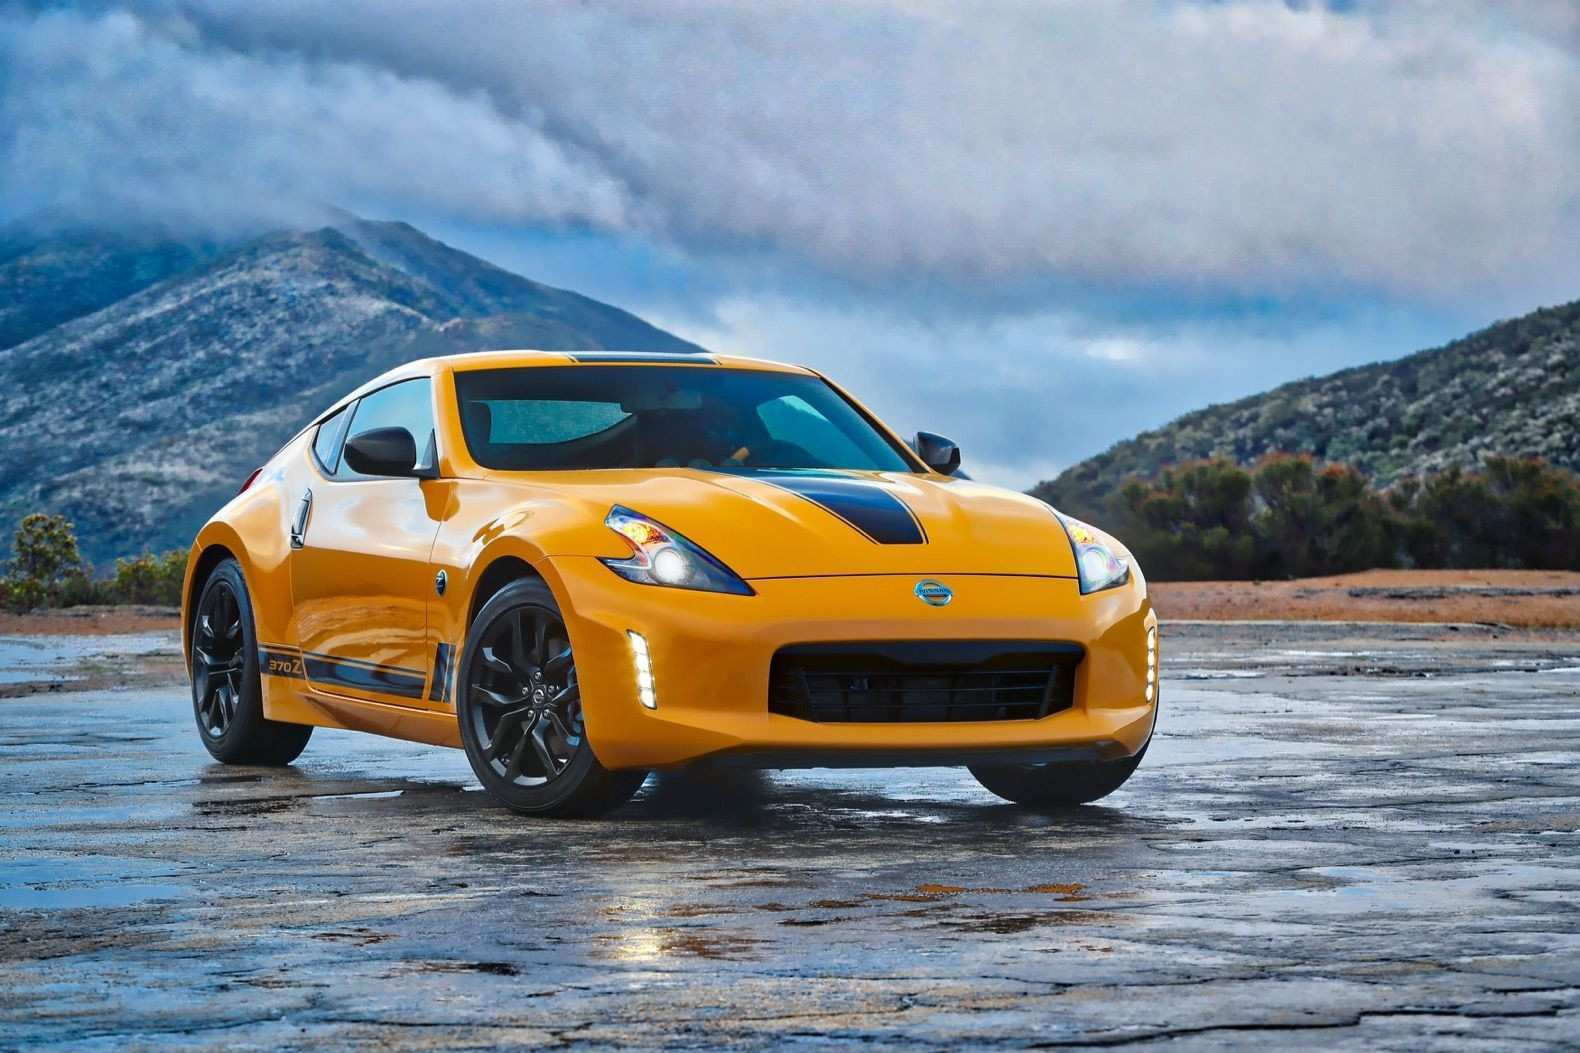 89 New 2020 Nissan Z35 Review Price with 2020 Nissan Z35 Review